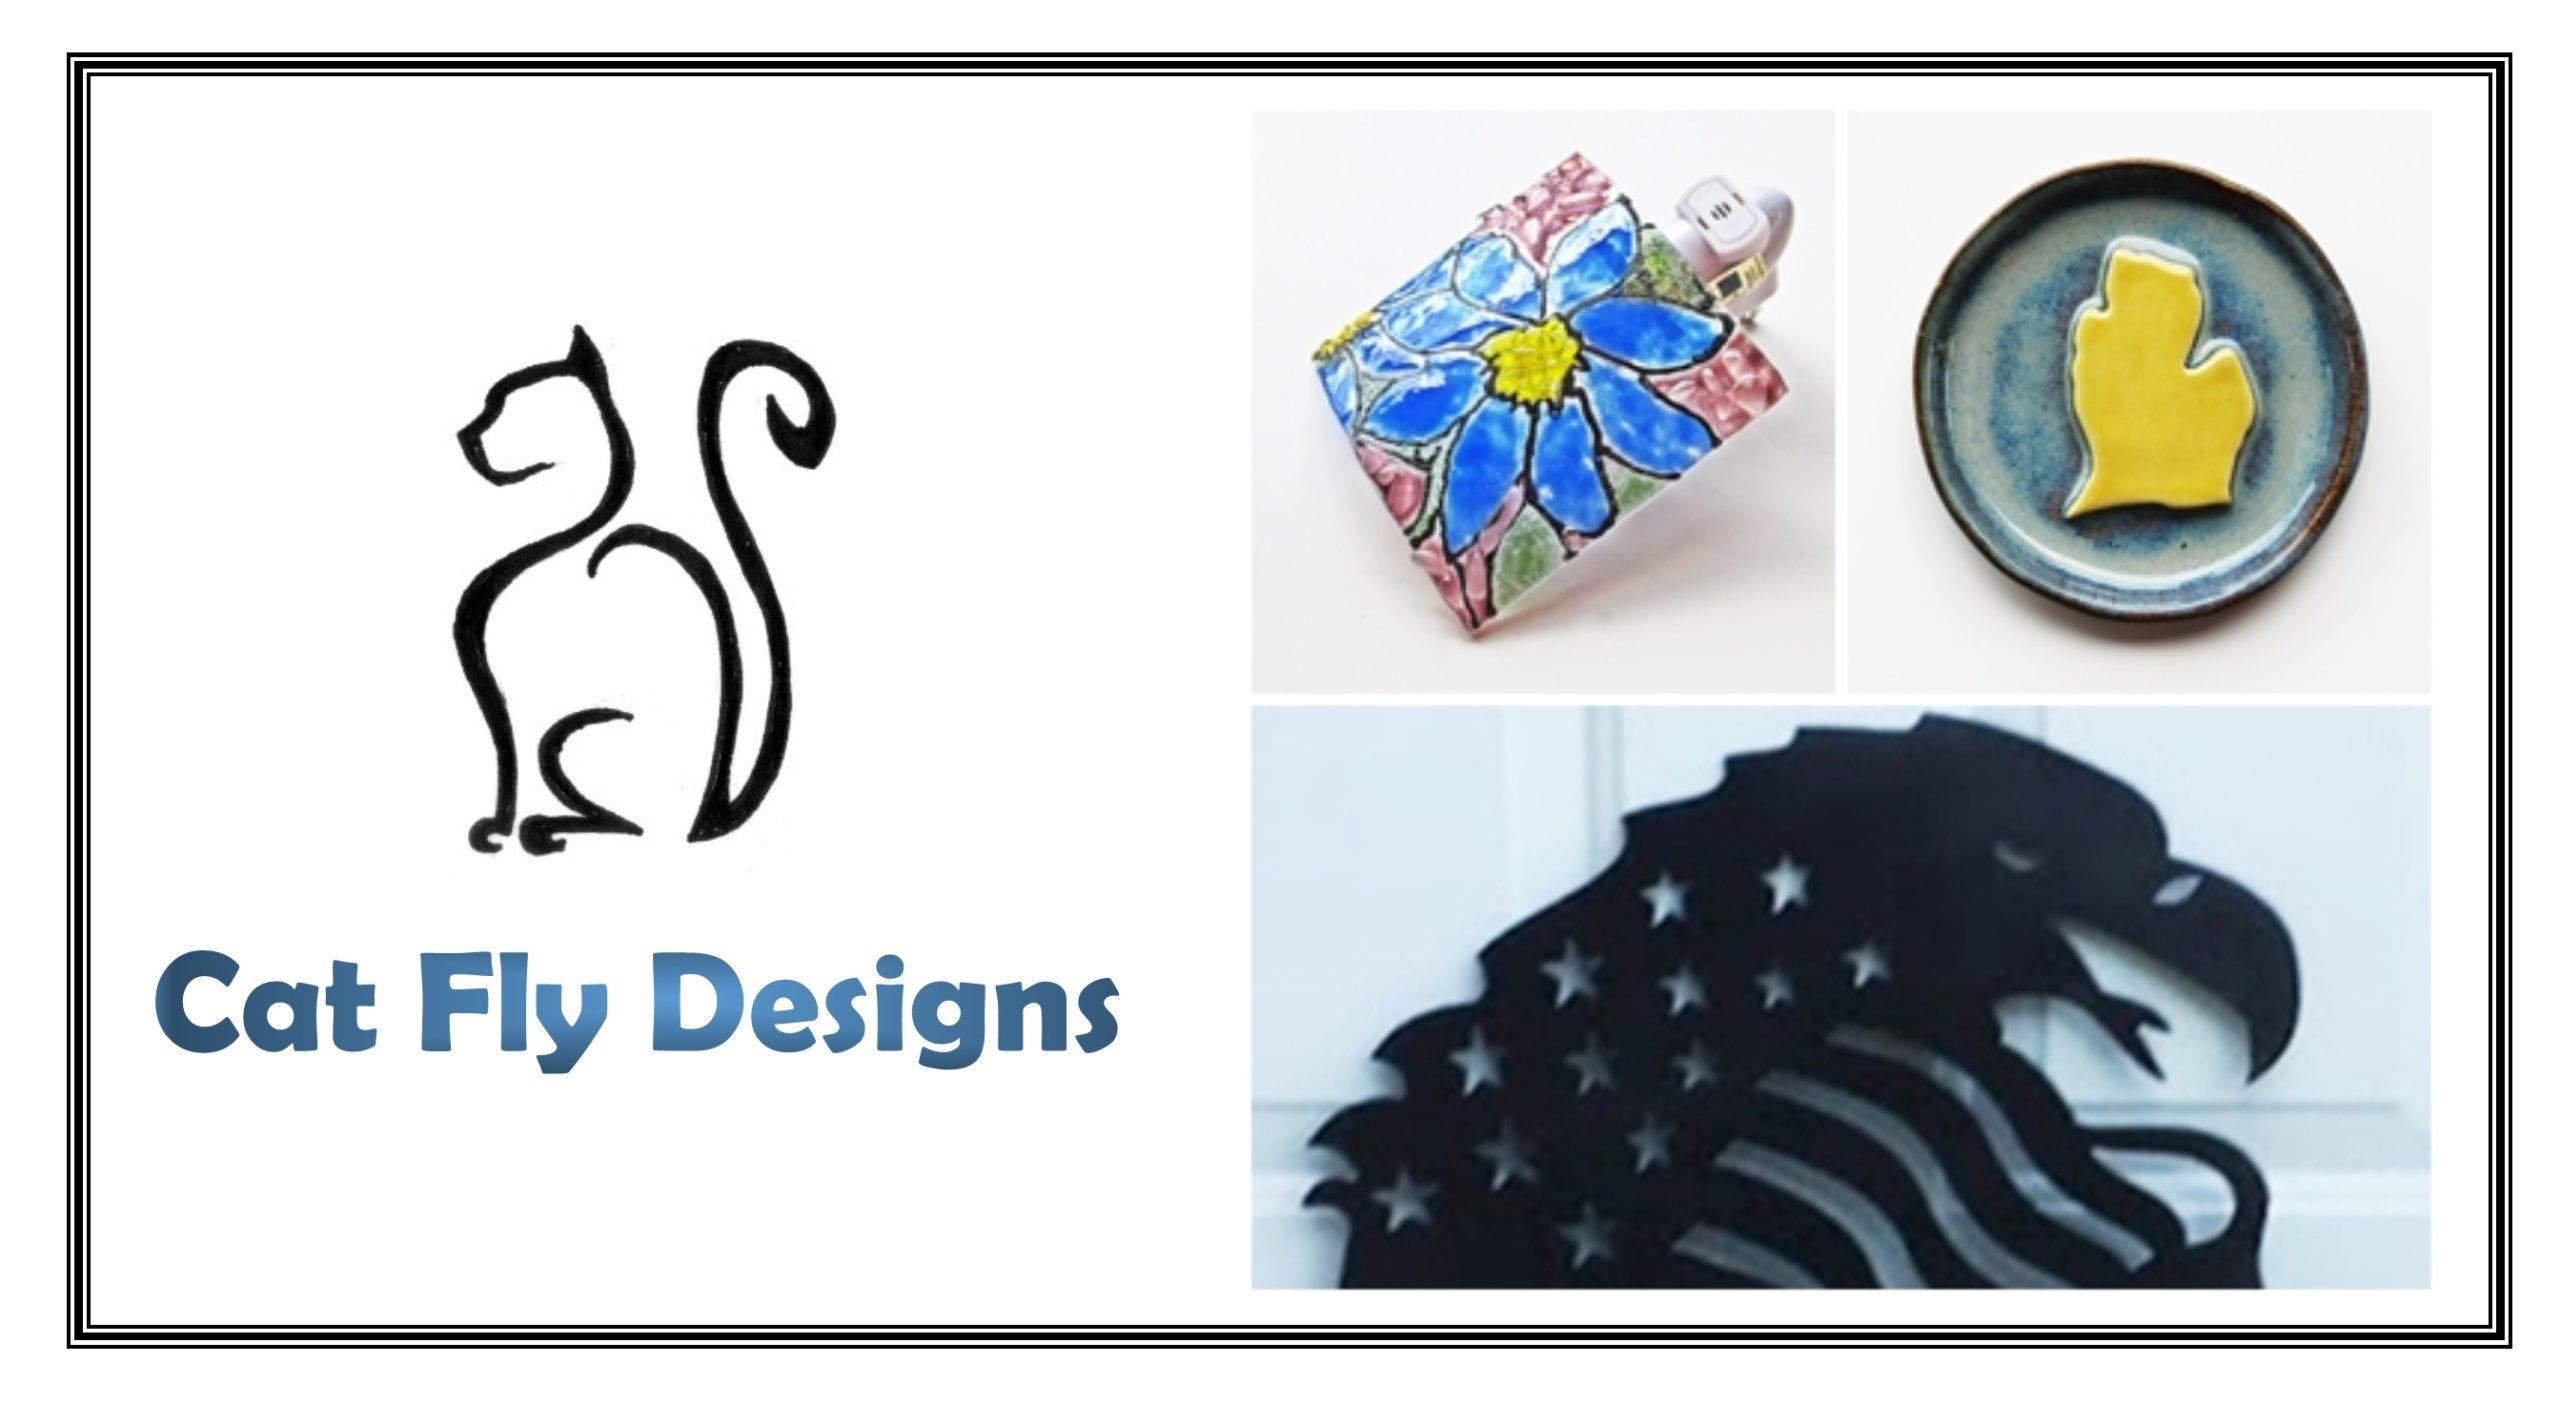 Cat Fly Designs